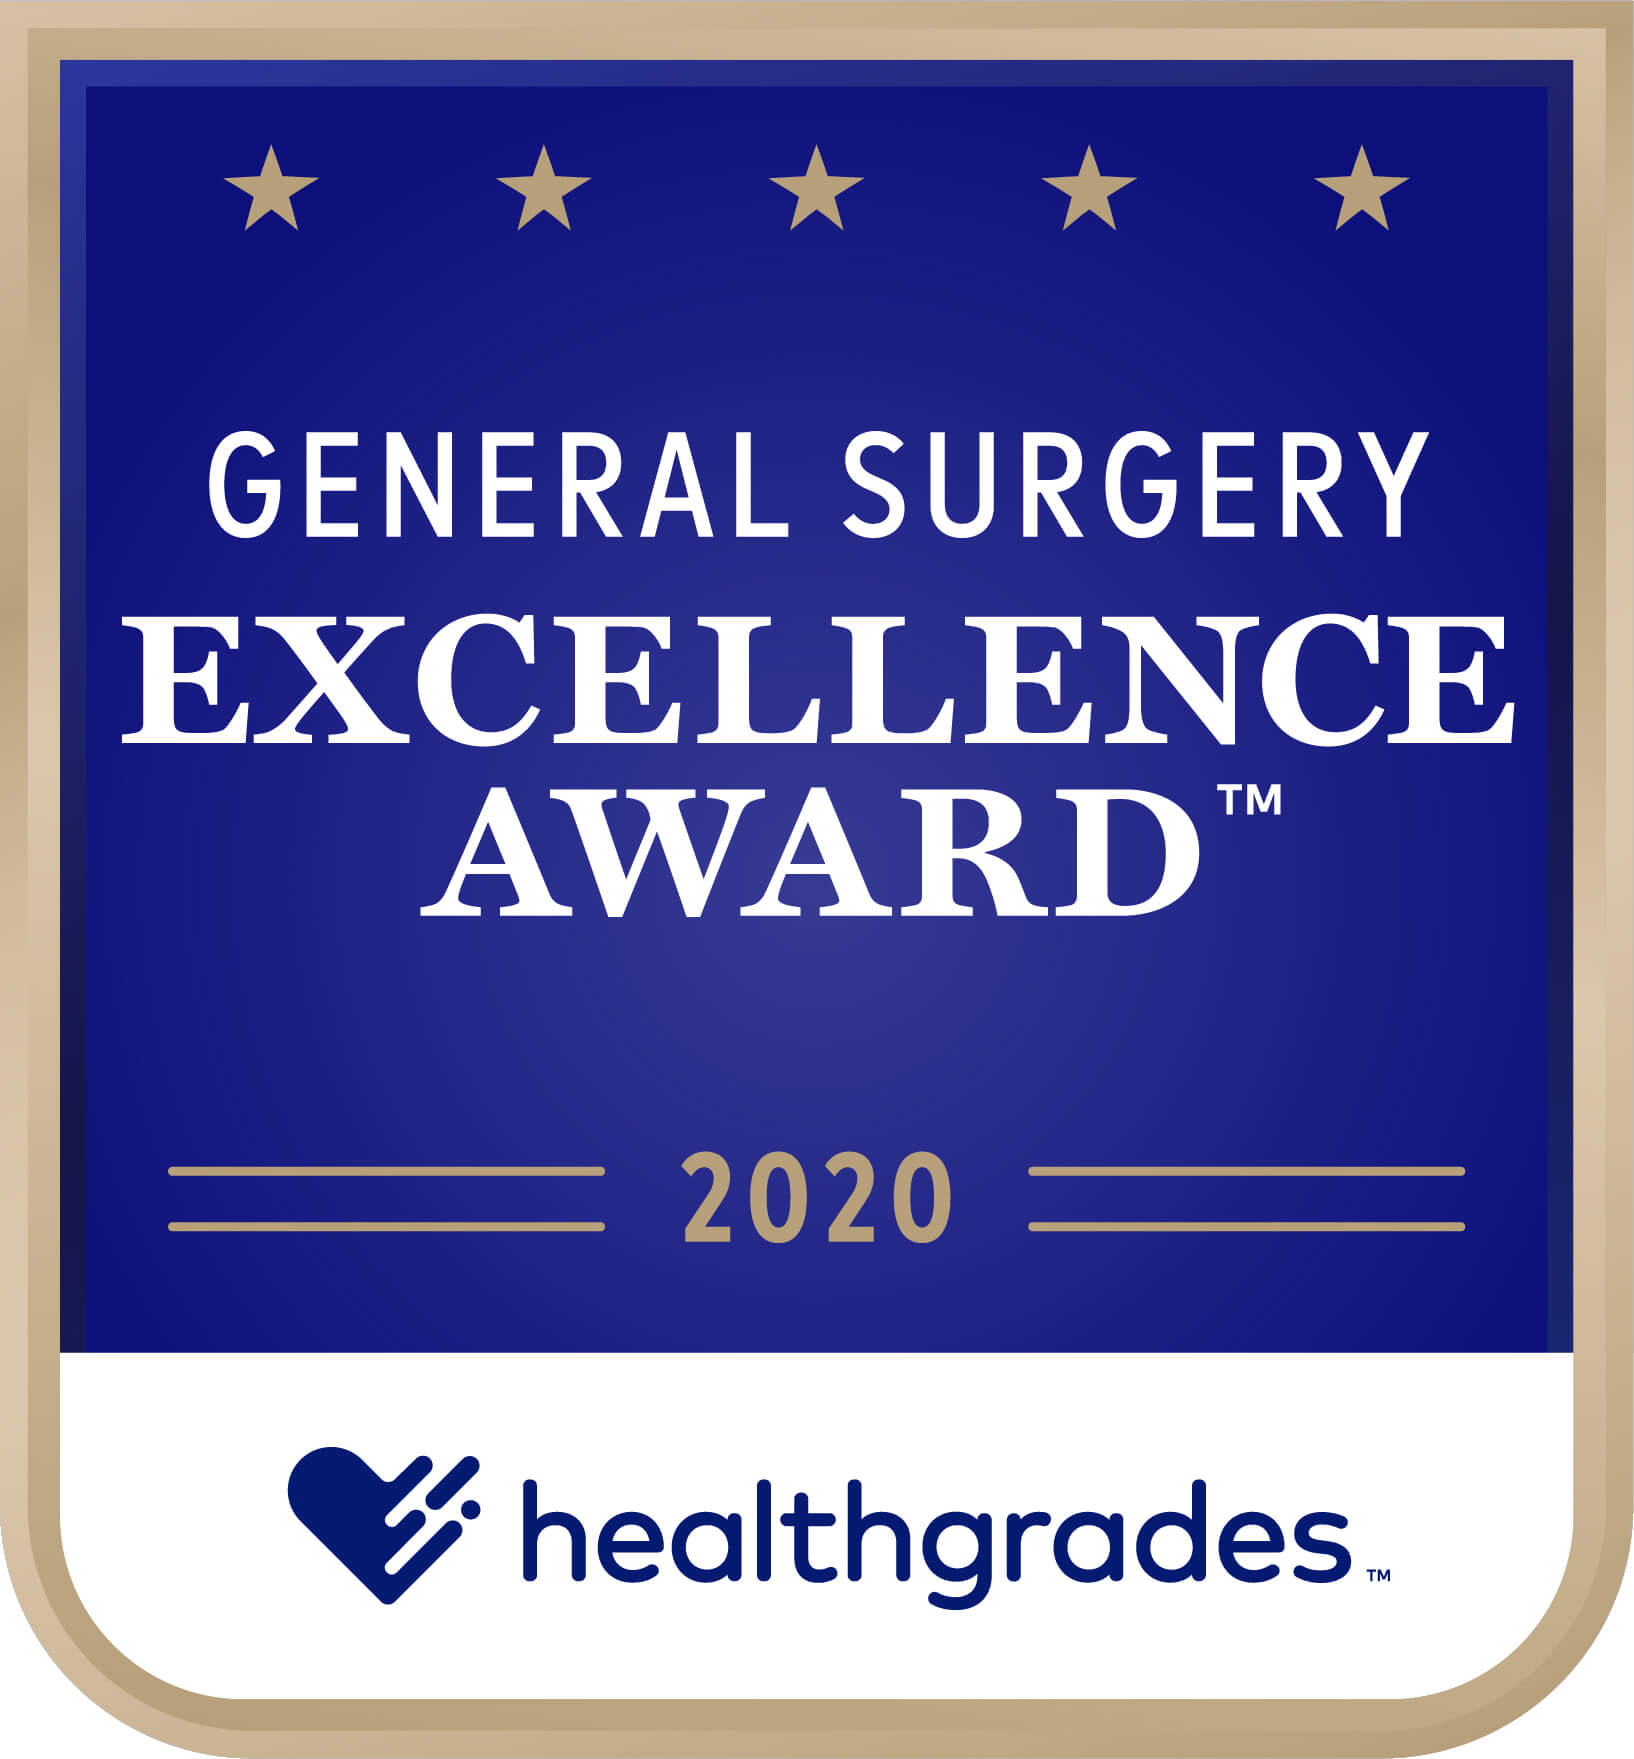 Healthgrades Excellence Award for General Surgery 2020